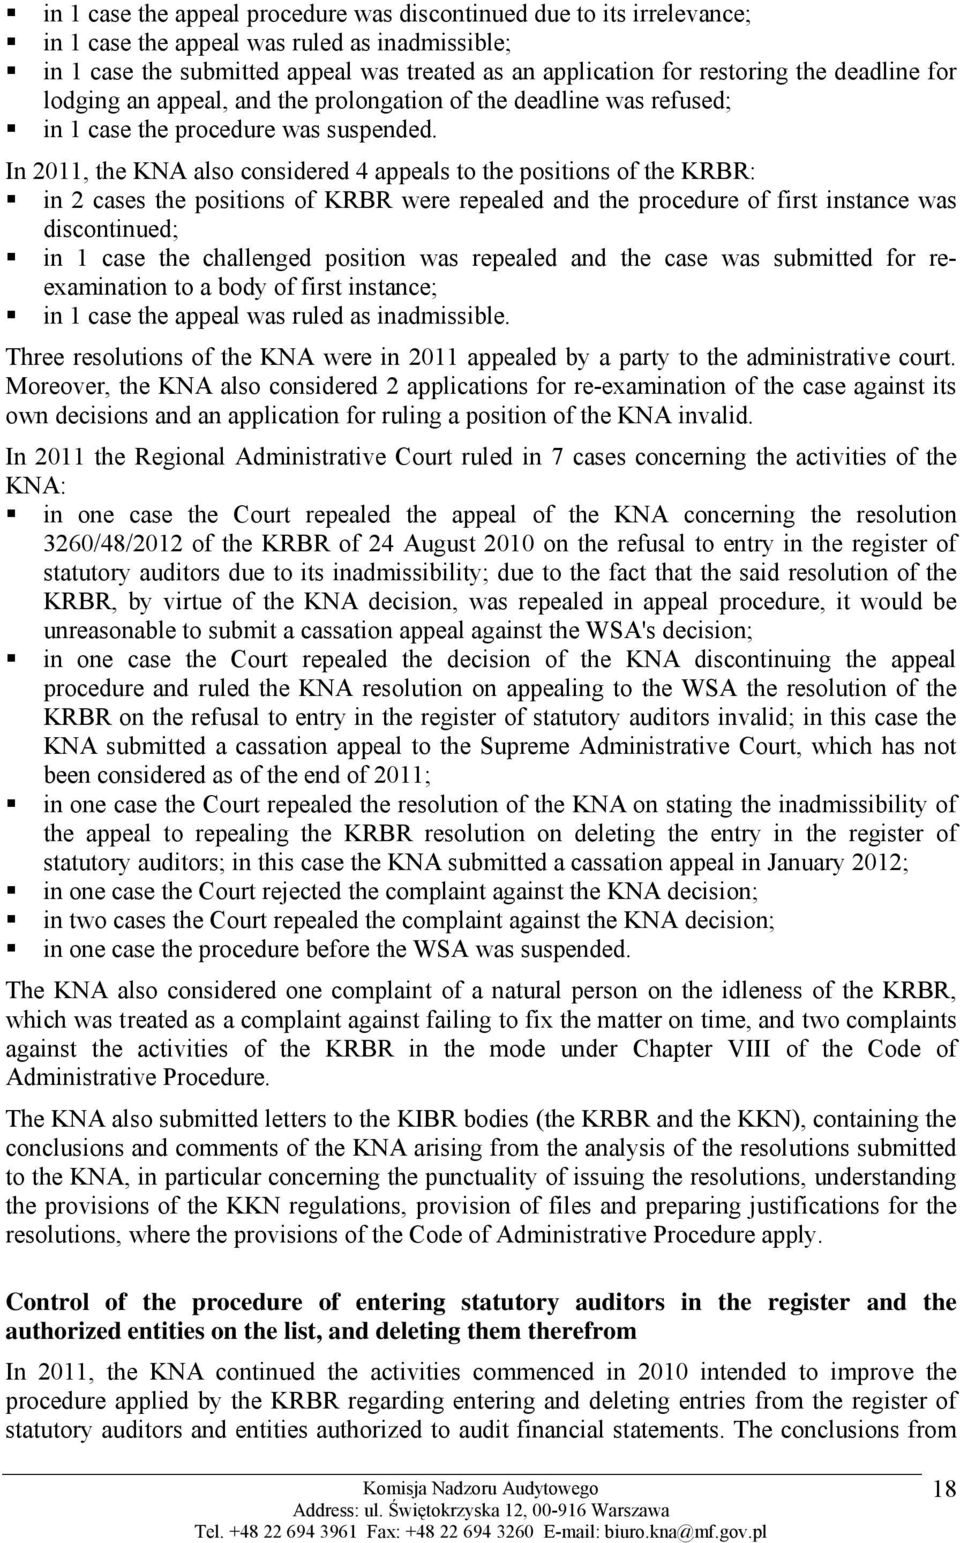 In 2011, the KNA also considered 4 appeals to the positions of the KRBR: in 2 cases the positions of KRBR were repealed and the procedure of first instance was discontinued; in 1 case the challenged